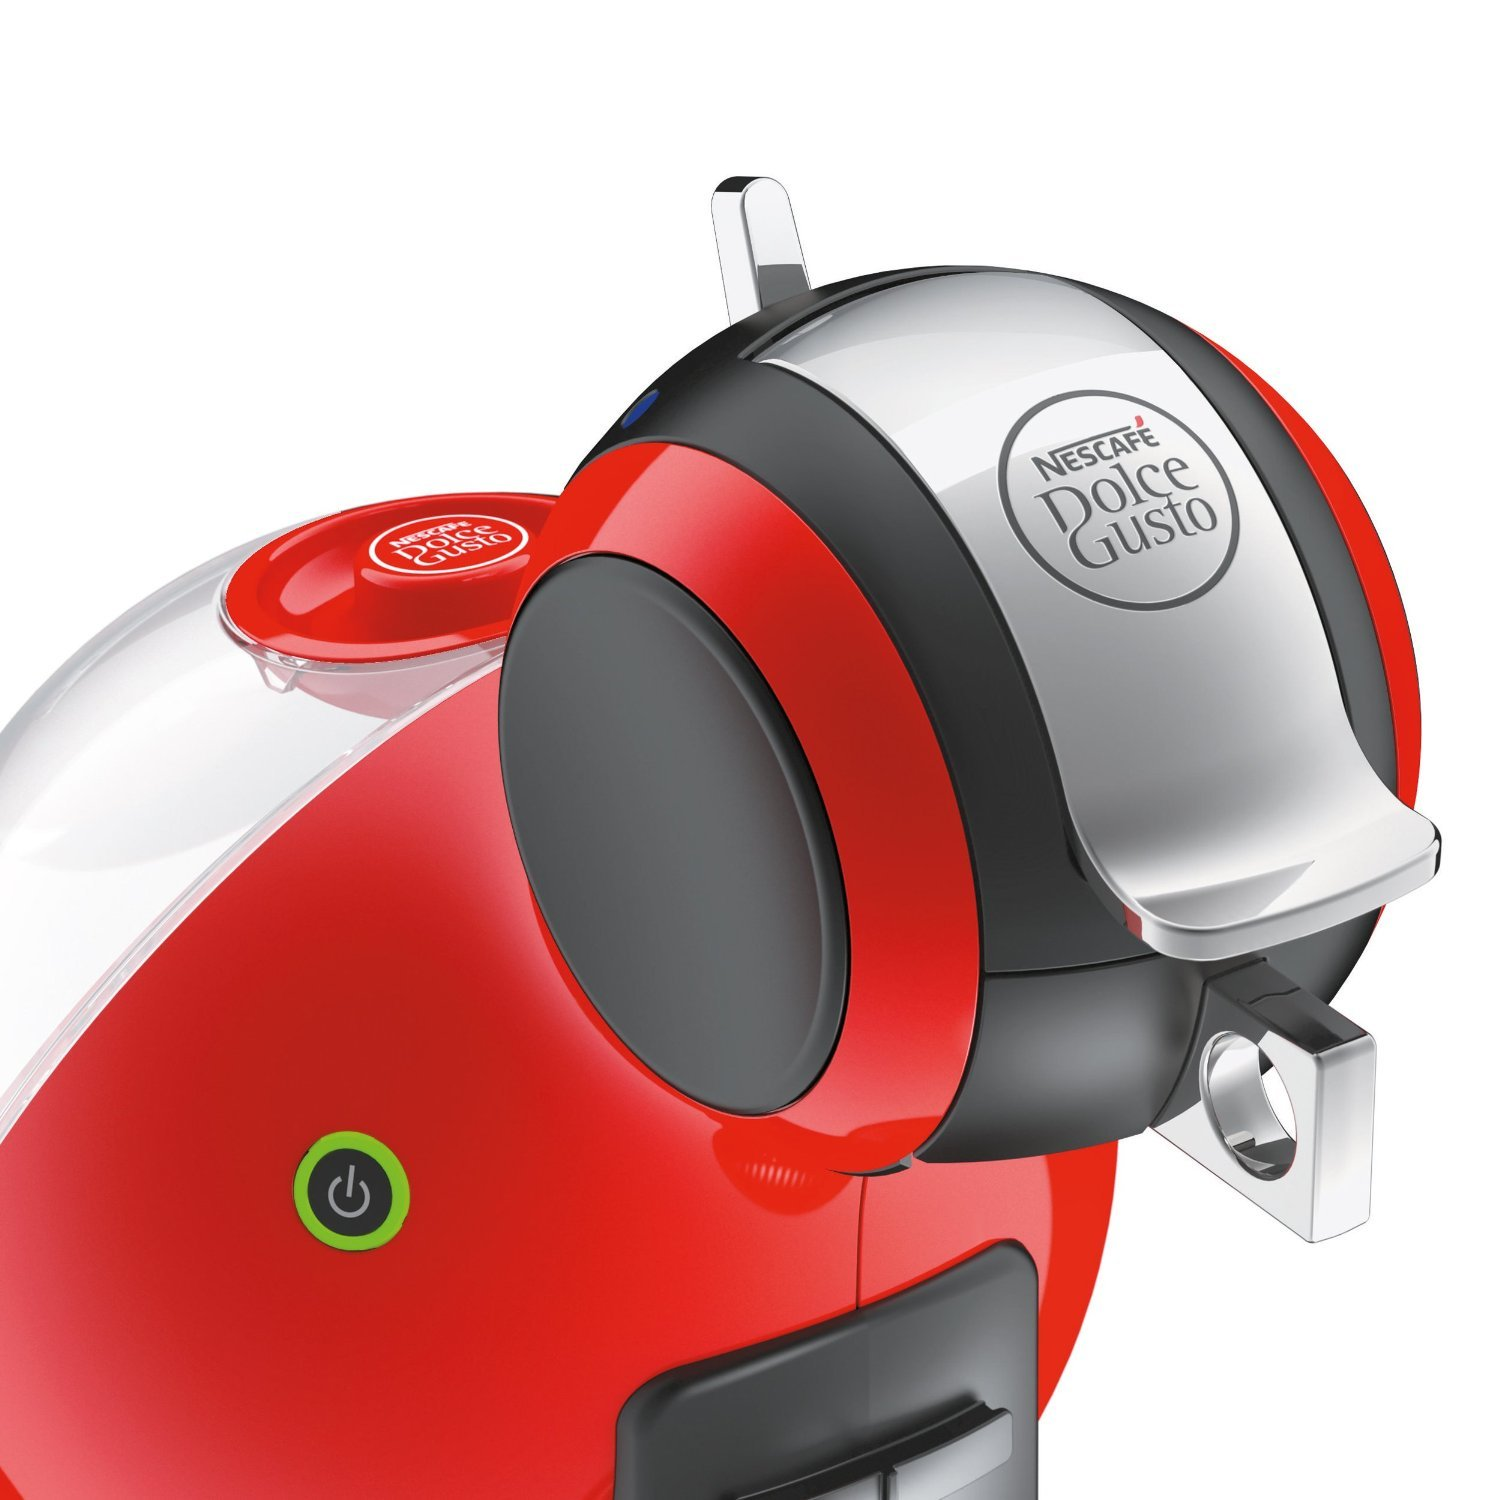 krups kp 2205 dolce gusto melody 3 test kaffeekapselmaschine. Black Bedroom Furniture Sets. Home Design Ideas